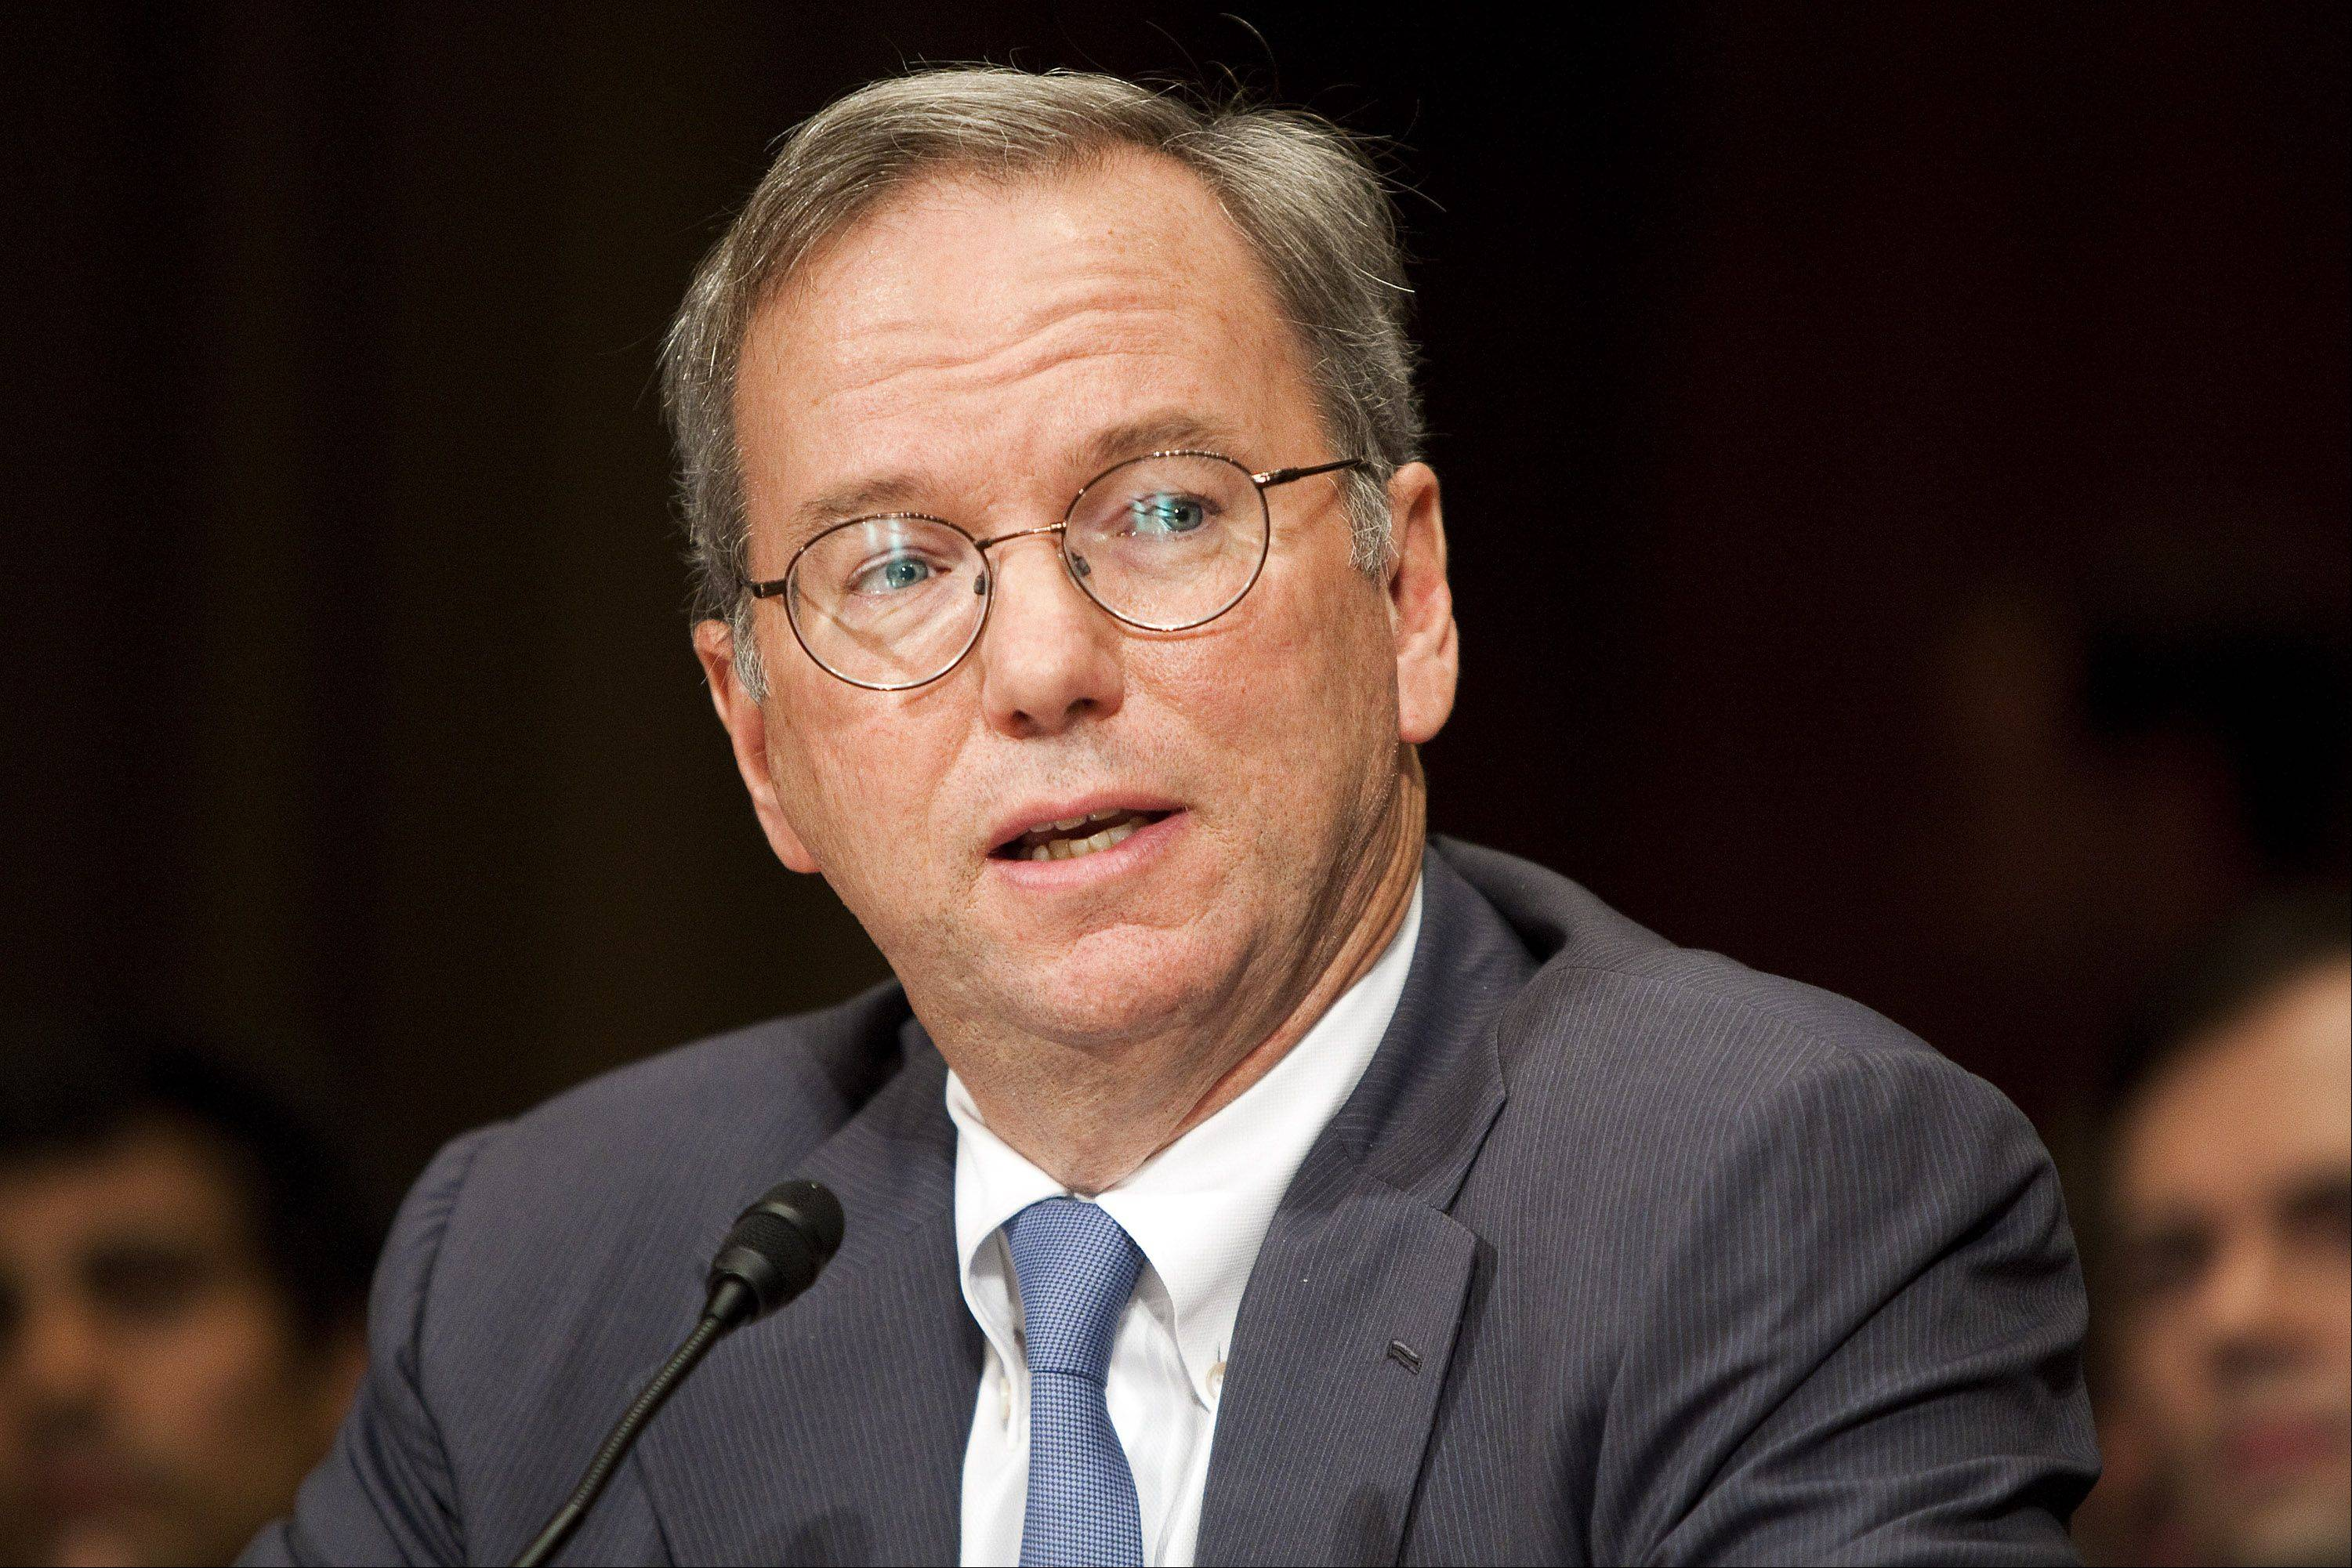 Eric Schmidt, chairman of Google Inc., testifies before the Senate Judiciary Committee's antitrust subcommittee in Washington on Wednesday.